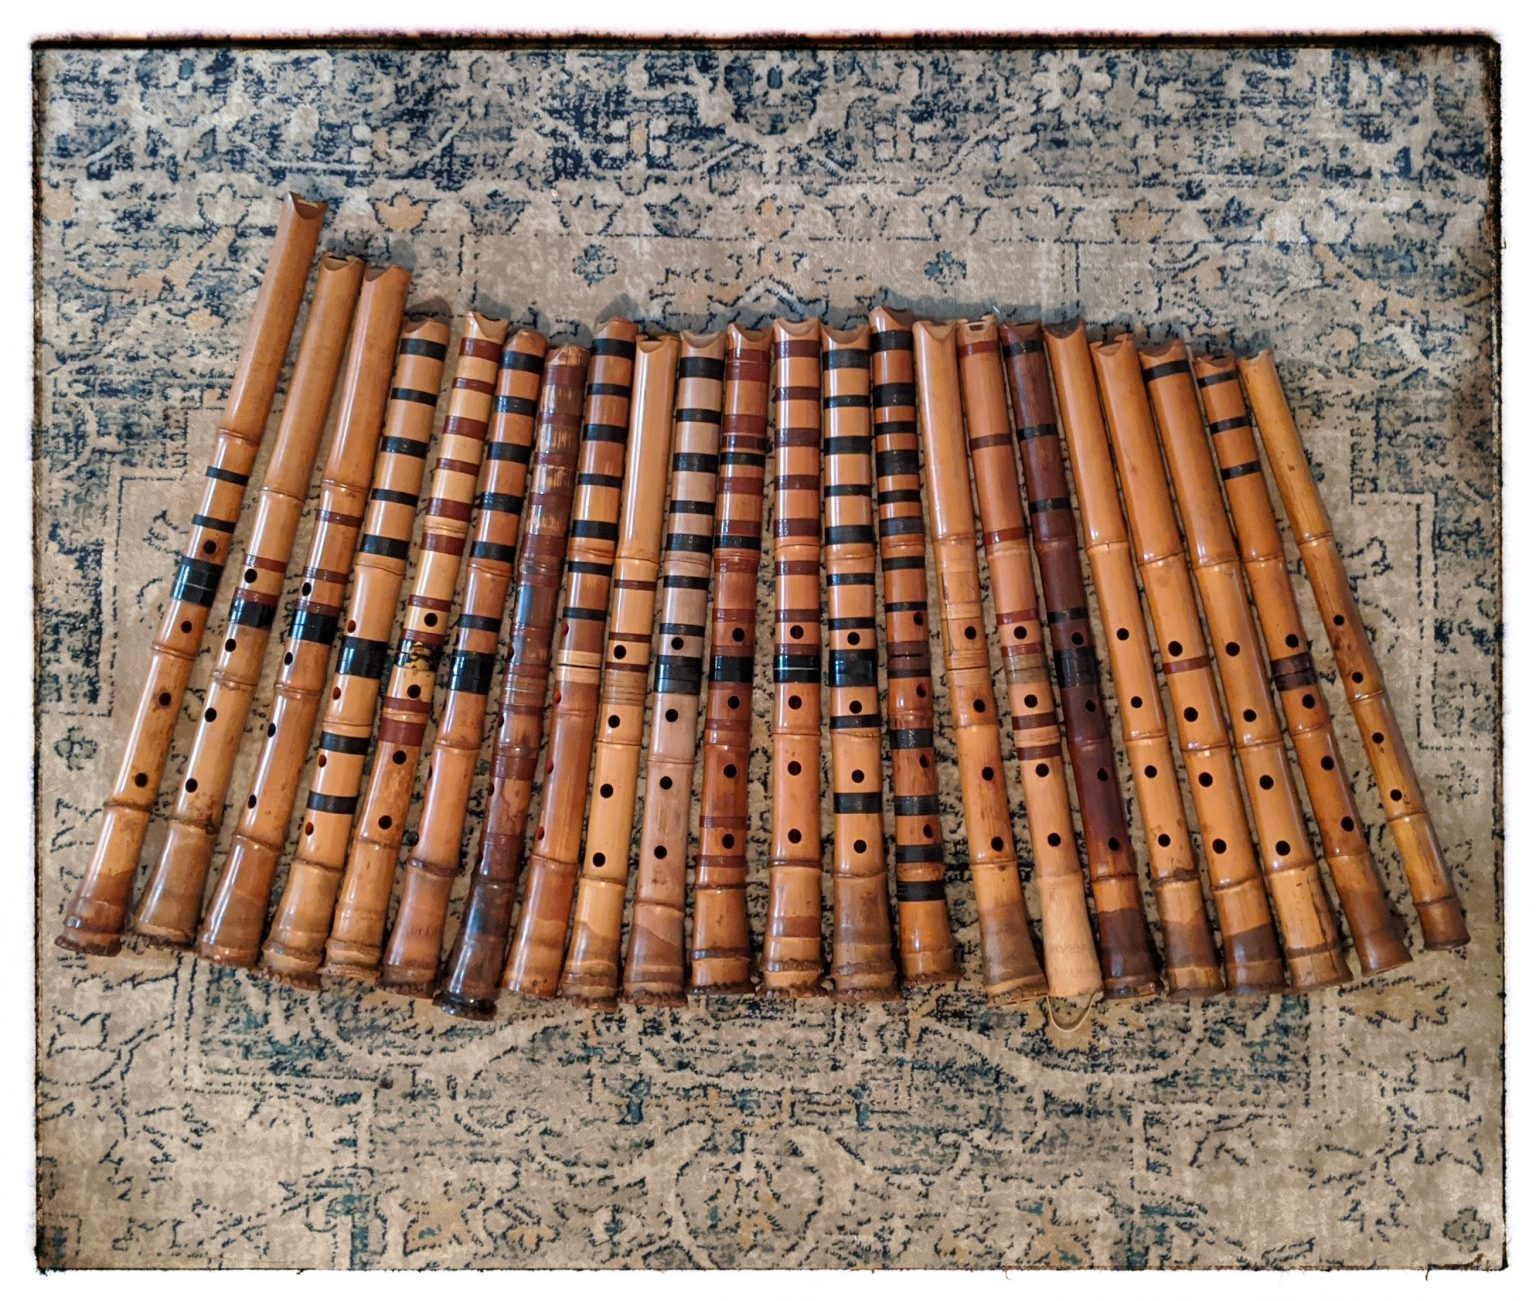 Shakuhachi Flutes For Sale